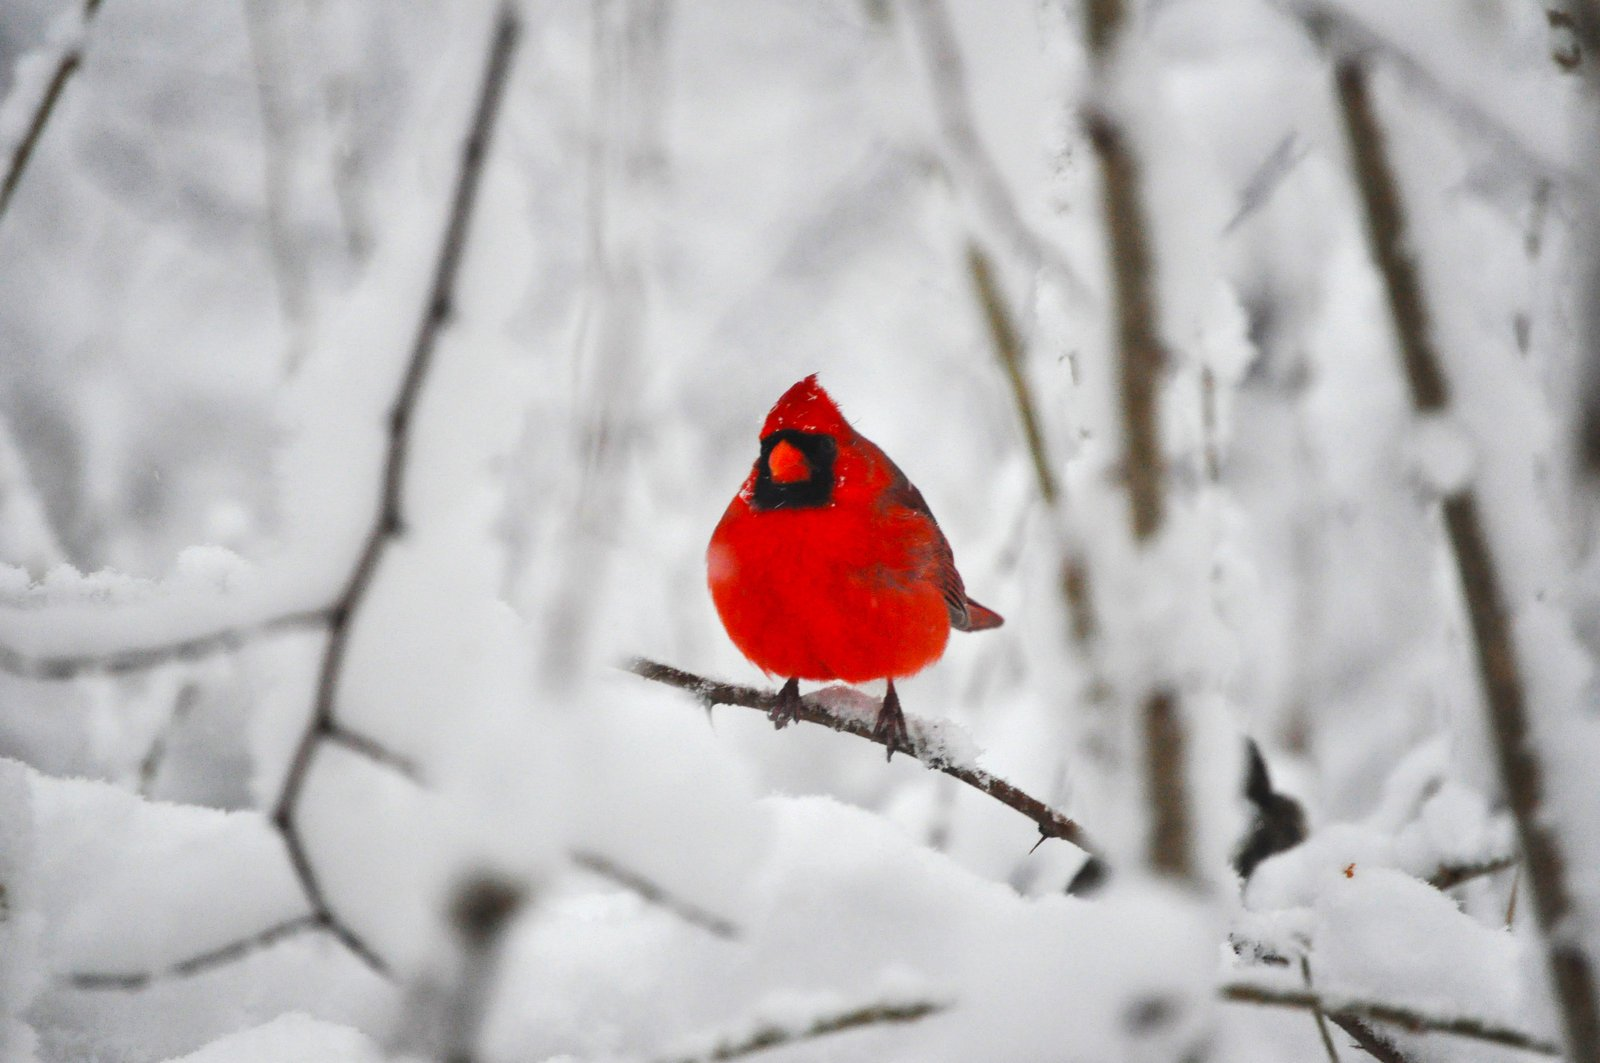 48 cardinals in the snow wallpaper on wallpapersafari - Pictures of cardinals in snow ...